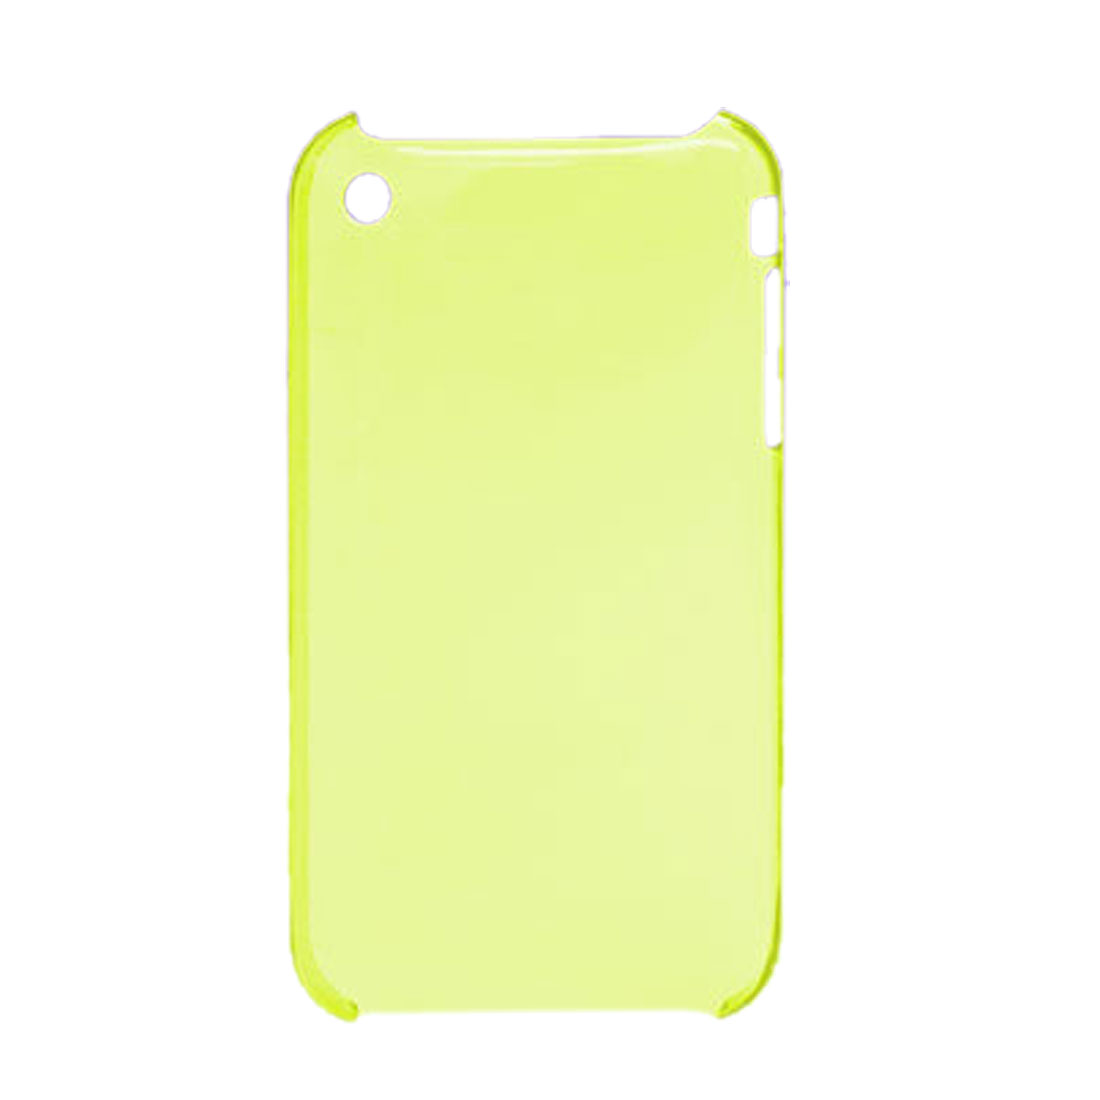 Protective Plastic Case Back Cover Shell for Apple iPhone 3G